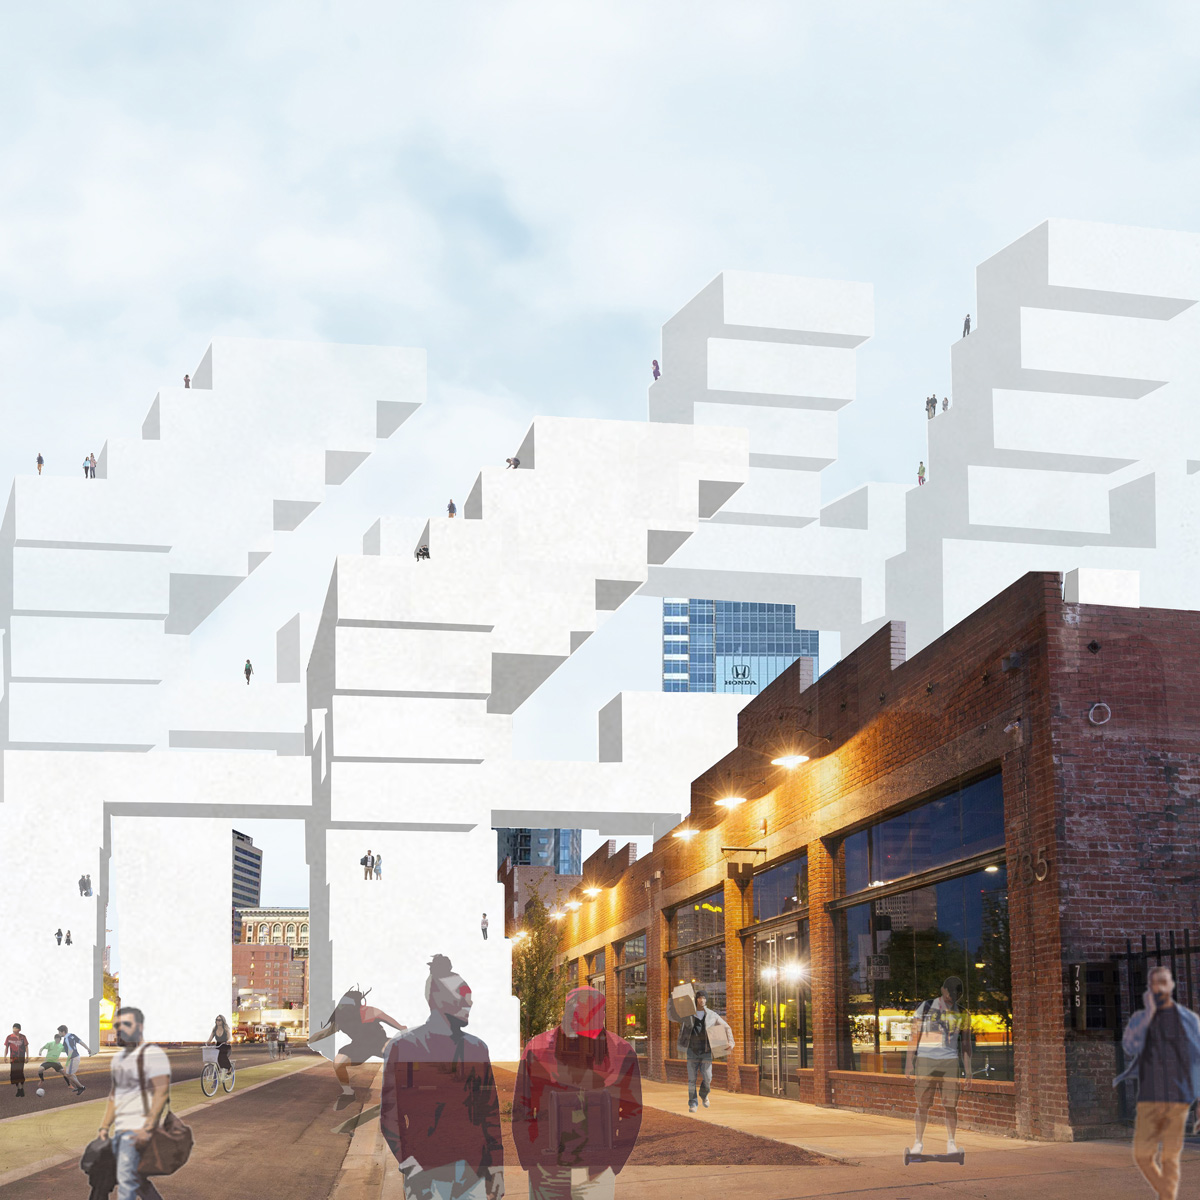 Street perspective of an urban mass that steps over the existing warehouse in Phoenix by student Israel Lozoya